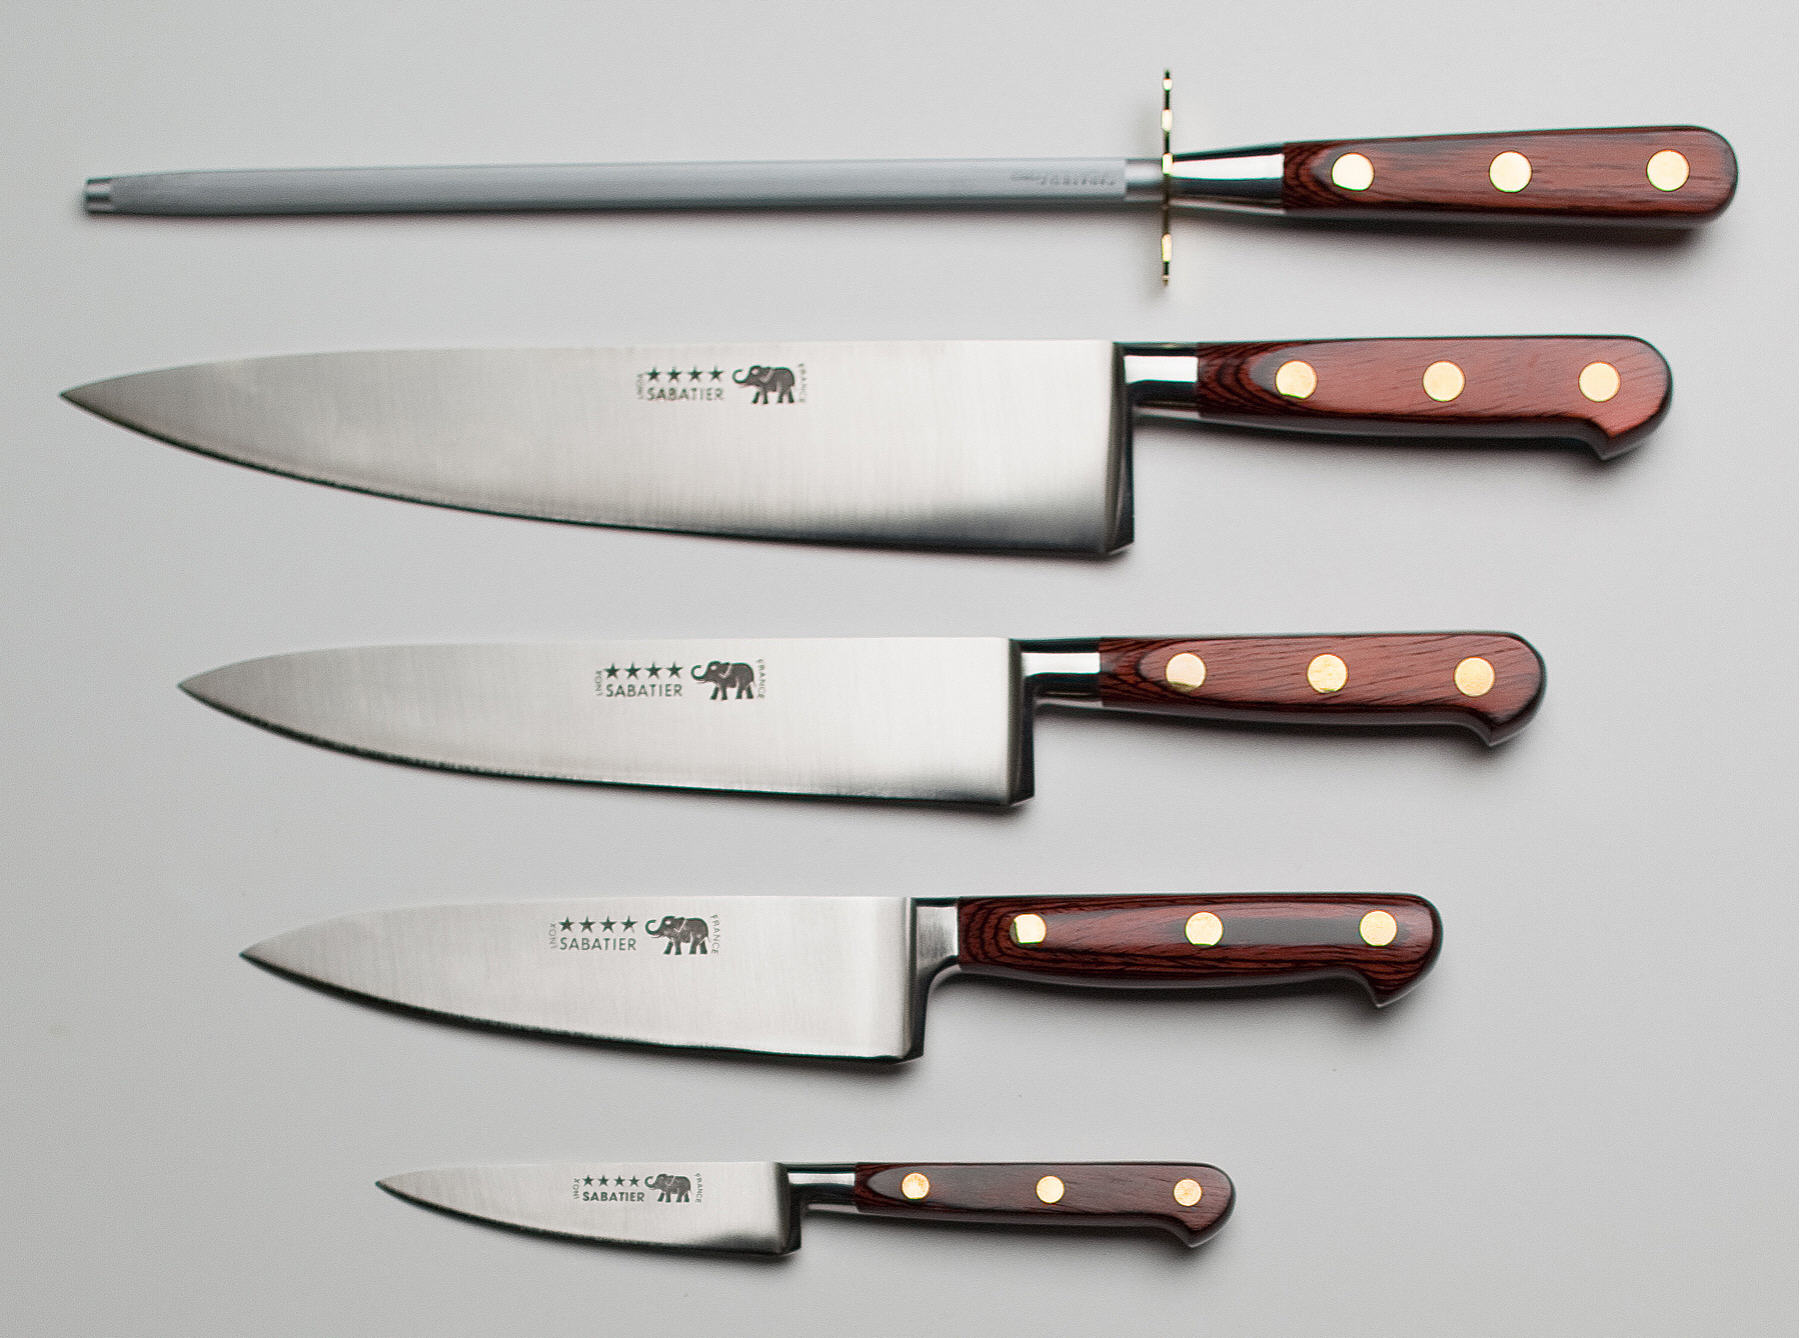 Thiers issard four star elephant sabatier knives 5 pc knife set red stamina